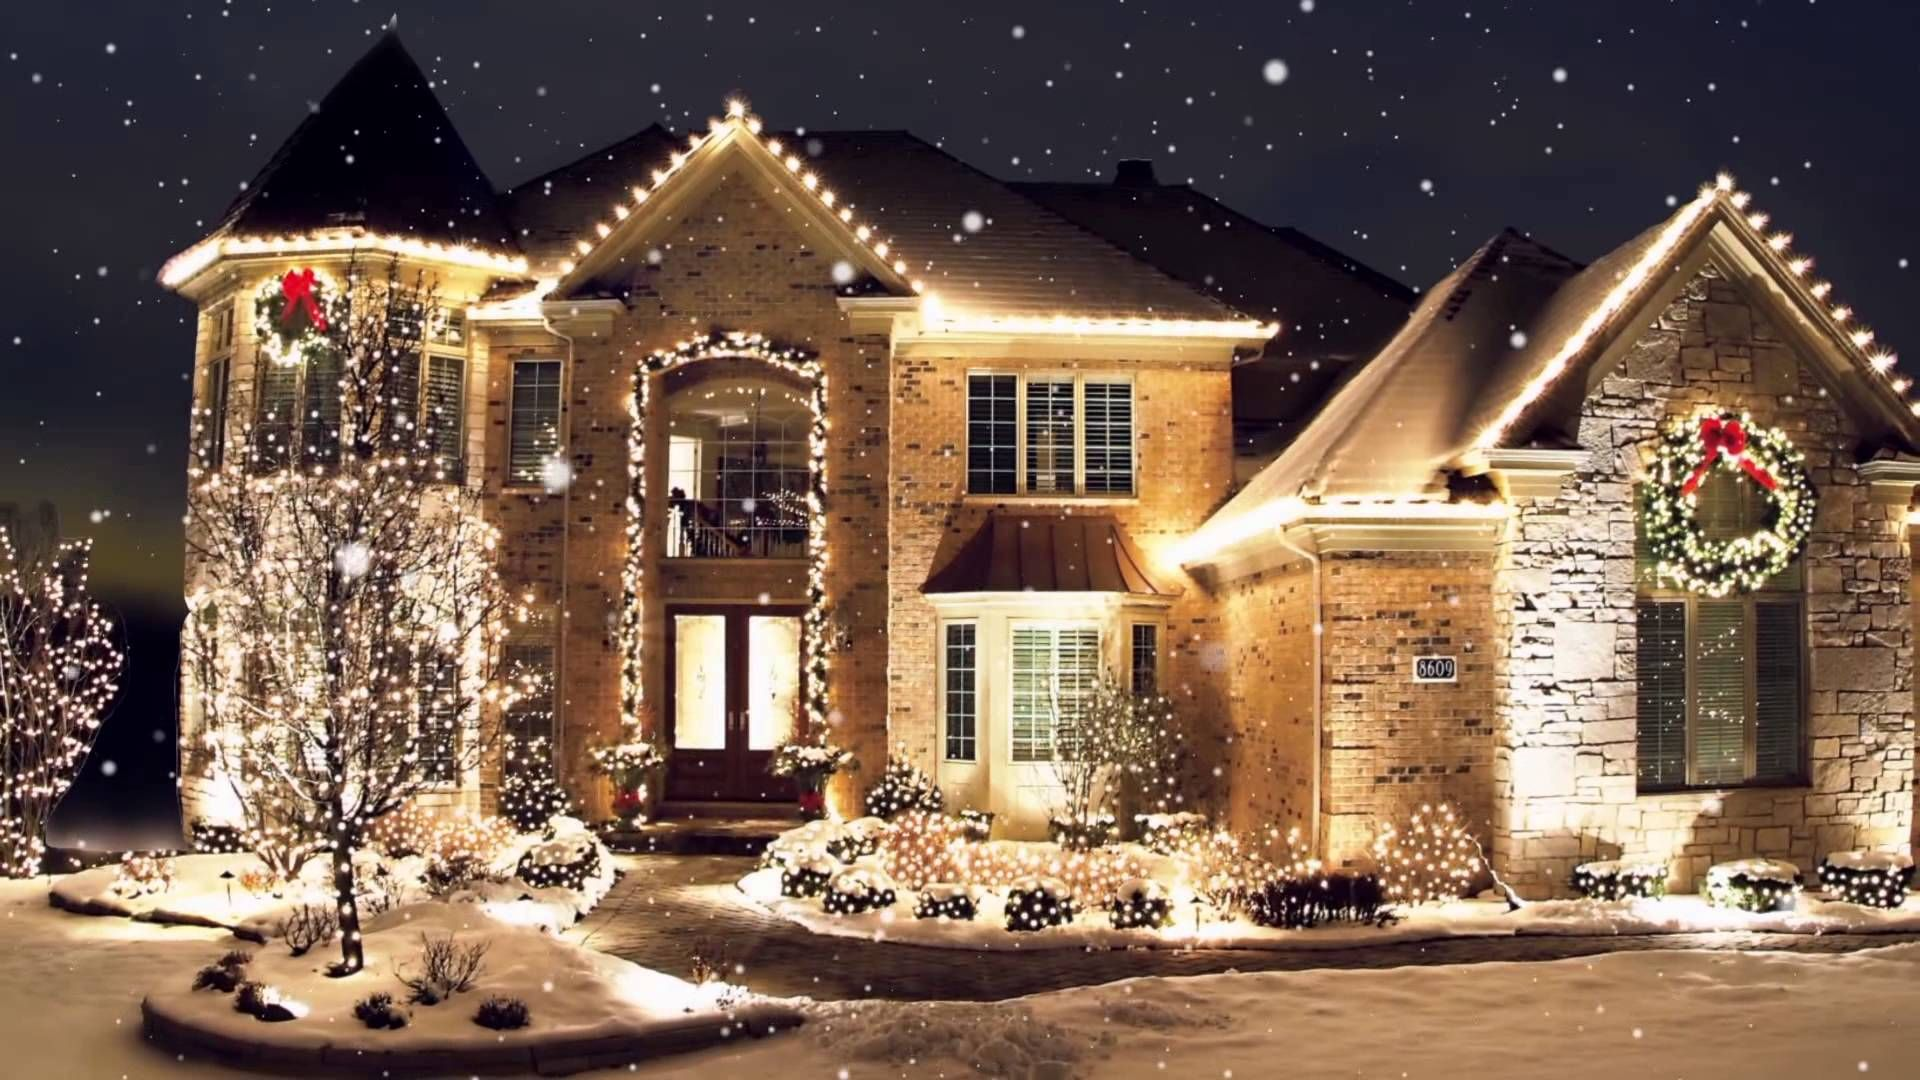 Christmas Light Installation.Christmas Lights Installation Installers Contractors Colo